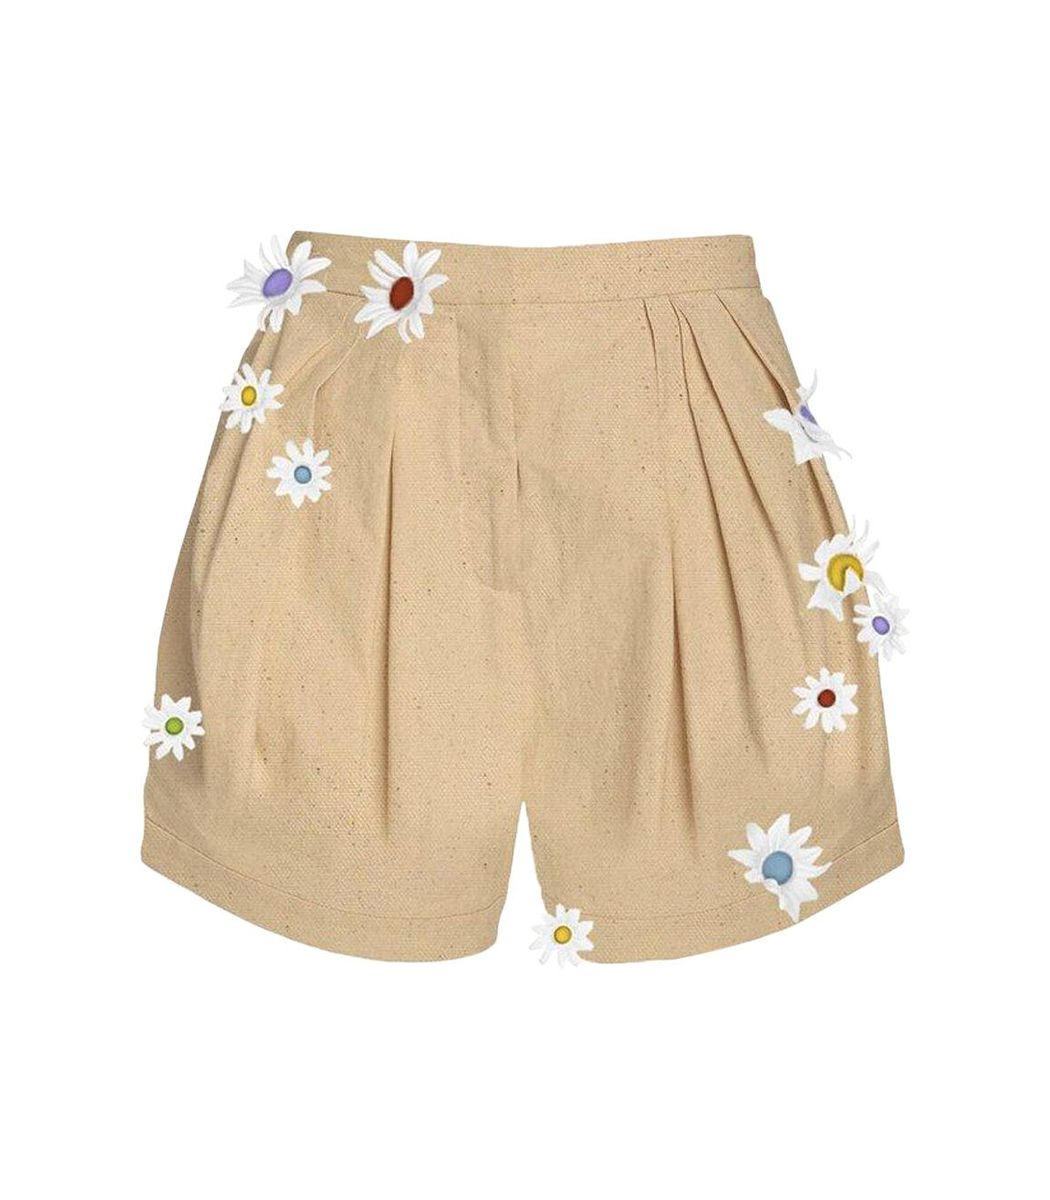 Rosie Assoulin Daisy Embroidered Pleated Asymmetrical Short